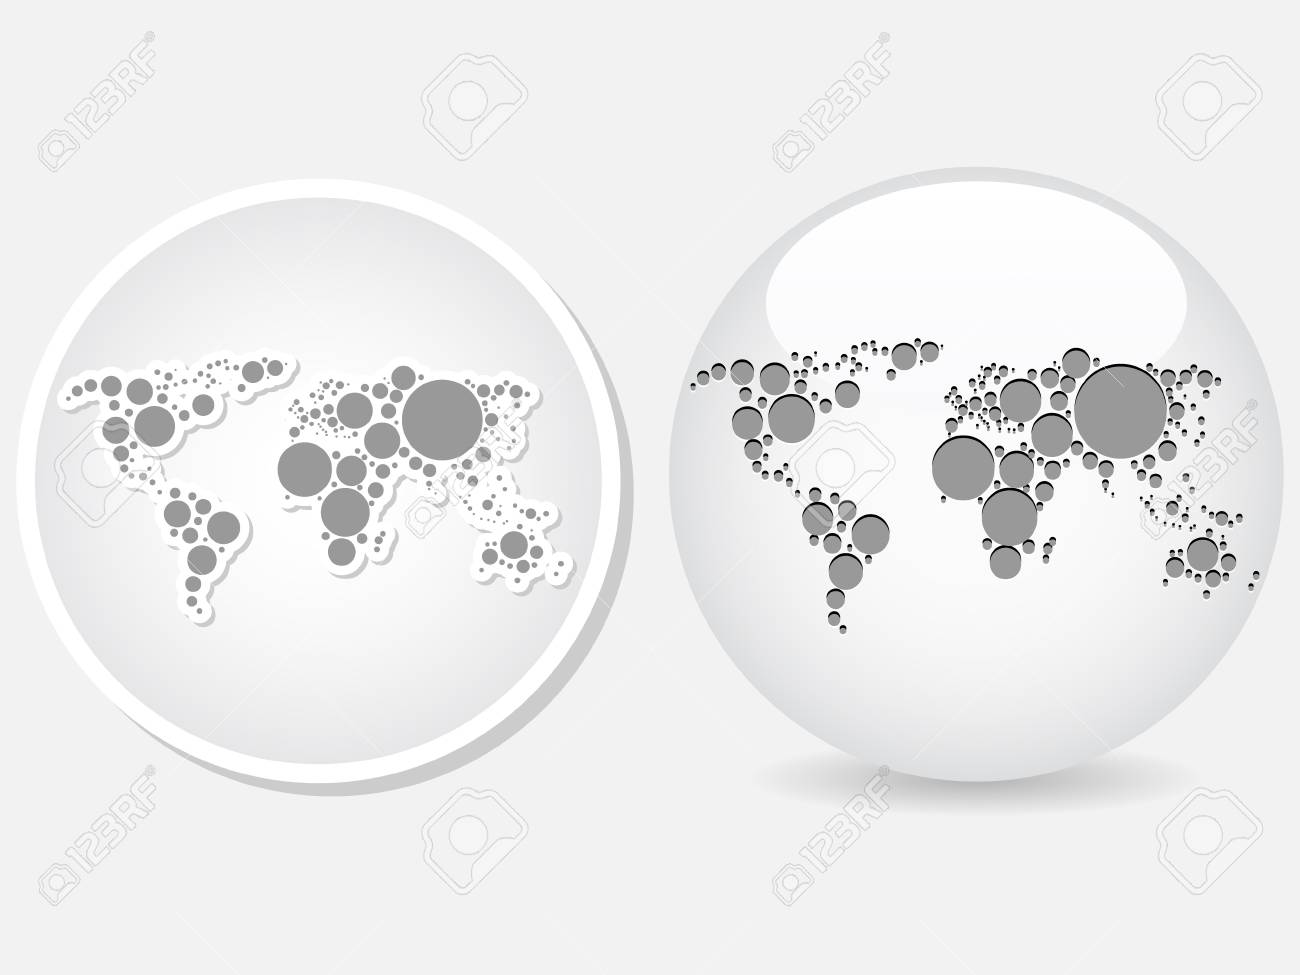 World map icon royalty free cliparts vectors and stock vector world map icon gumiabroncs Choice Image